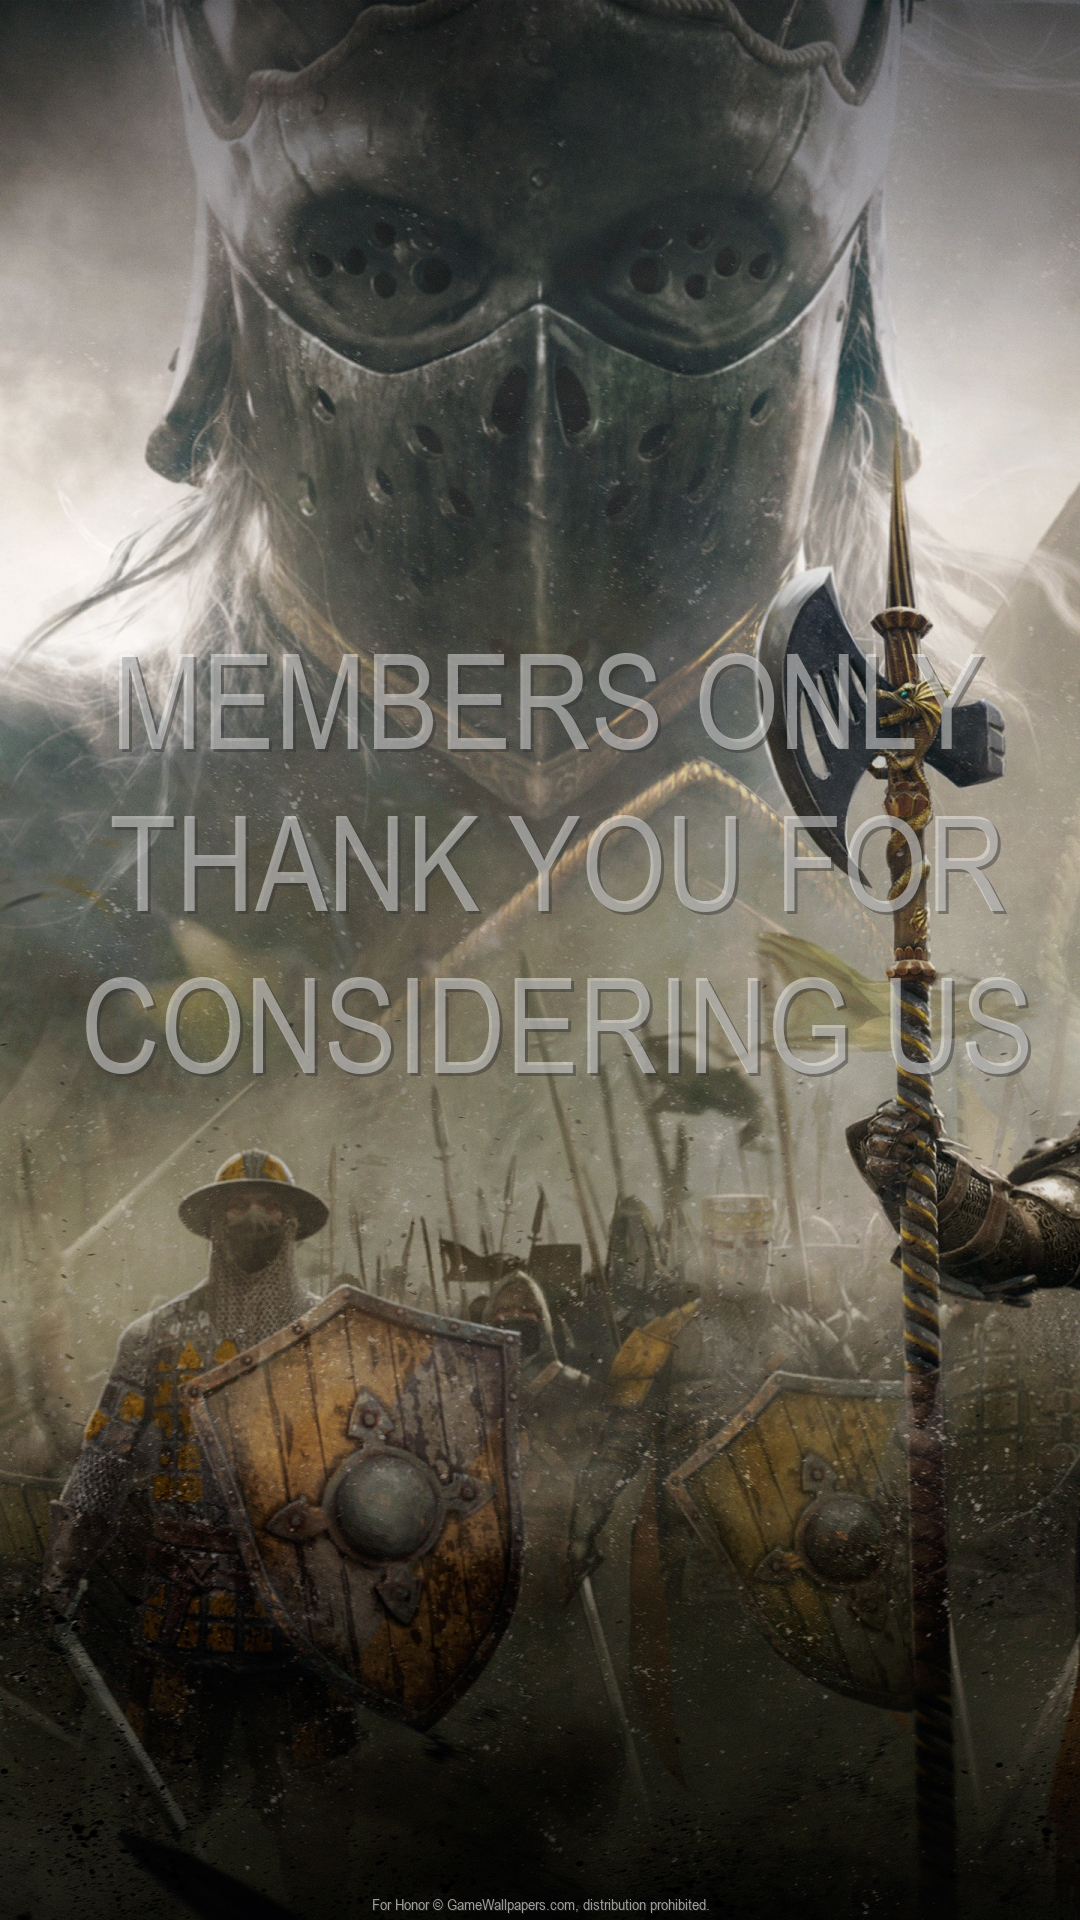 For Honor 1920x1080 Mobile wallpaper or background 05